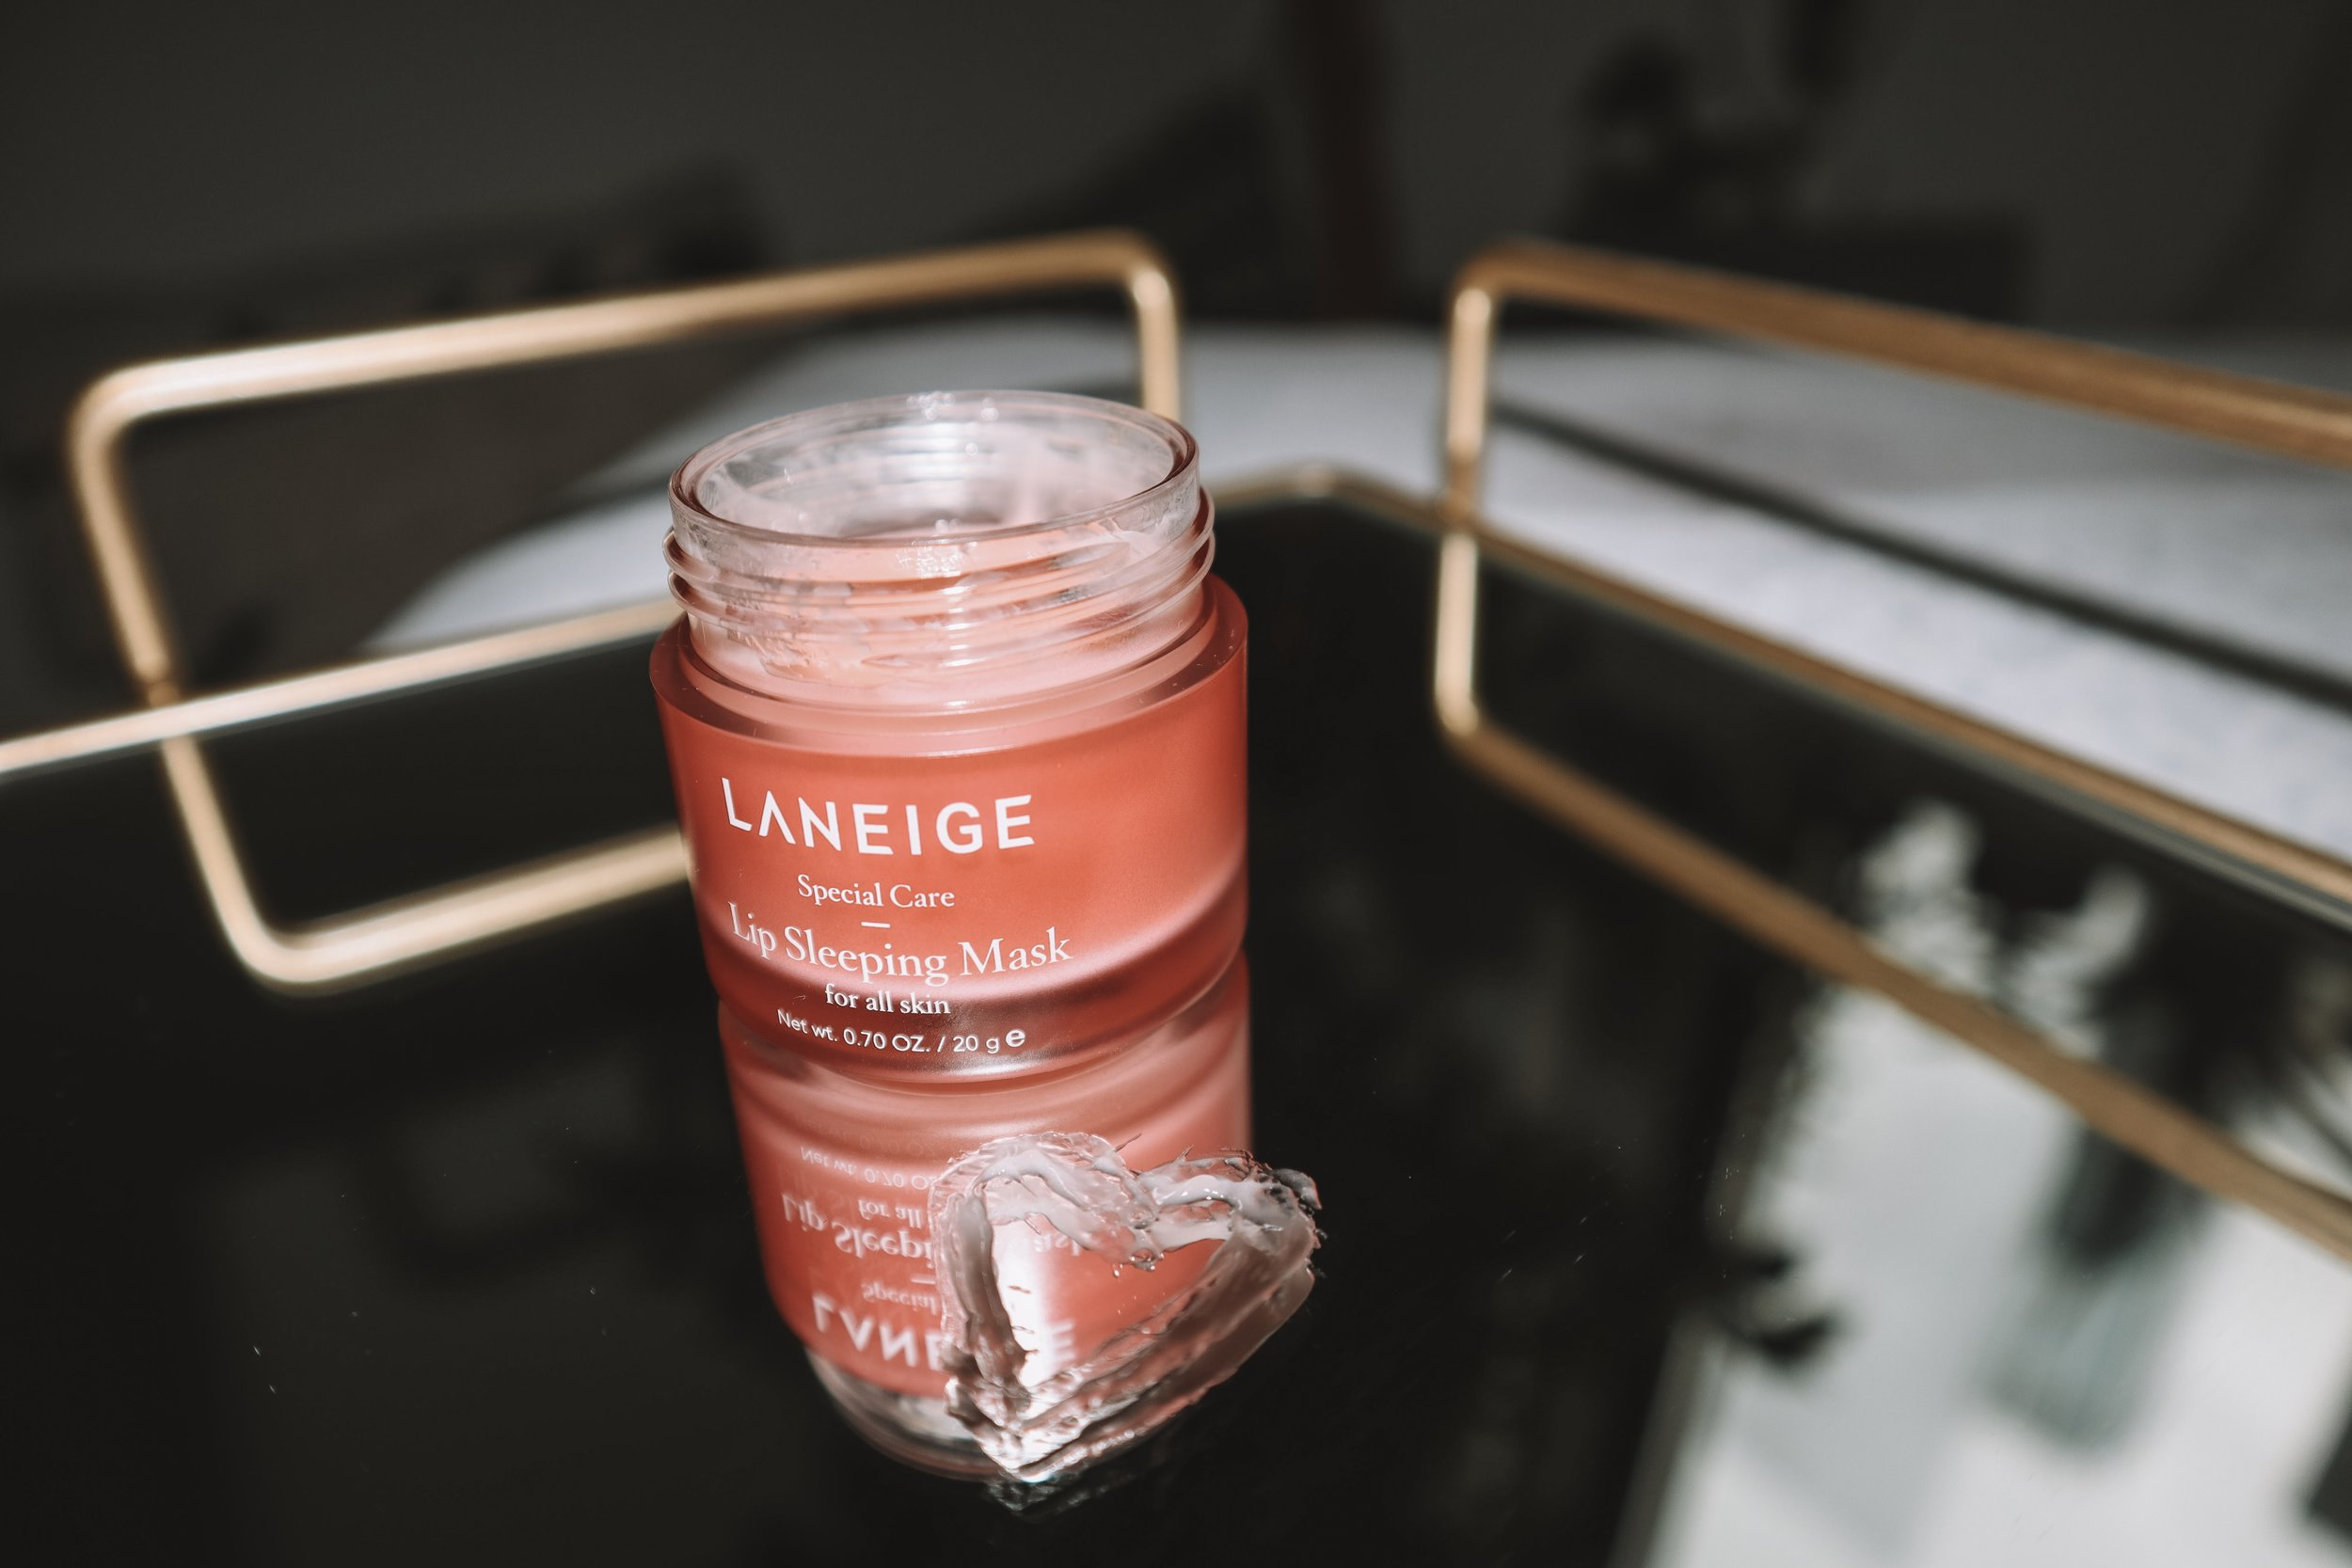 Laneige Lip Sleeping Mask - One of my holy grail lip products that will actually help with dry lips. Right before you go to sleep, apply this lip mask and your lips will feel soft the next day. This is definitely worth the price since this 0.70 oz will last you forever. And it smells like strawberries…mmmm!